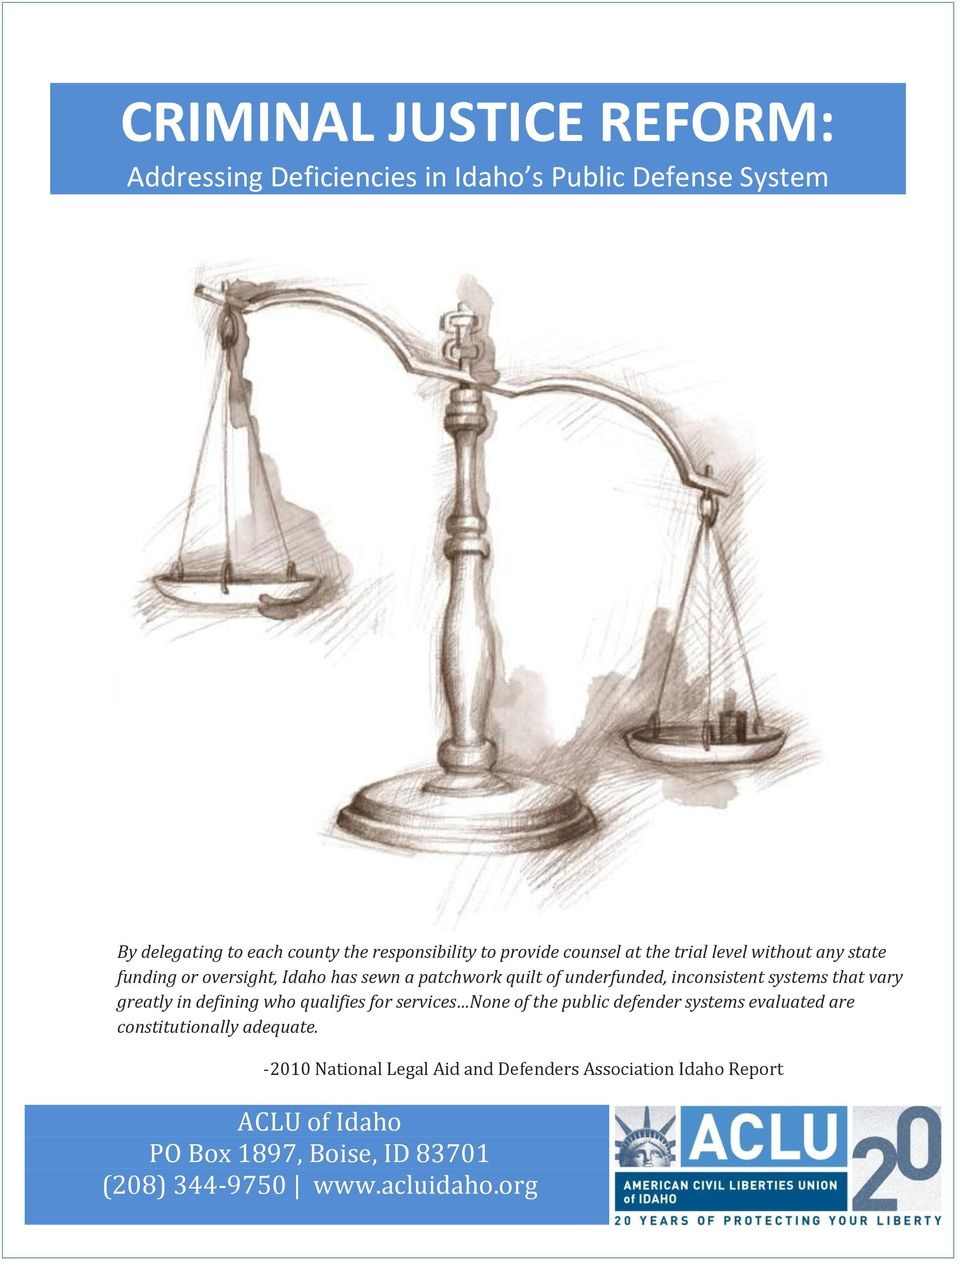 defining who qualifies for services None of the public defender systems evaluated are constitutionally adequate.